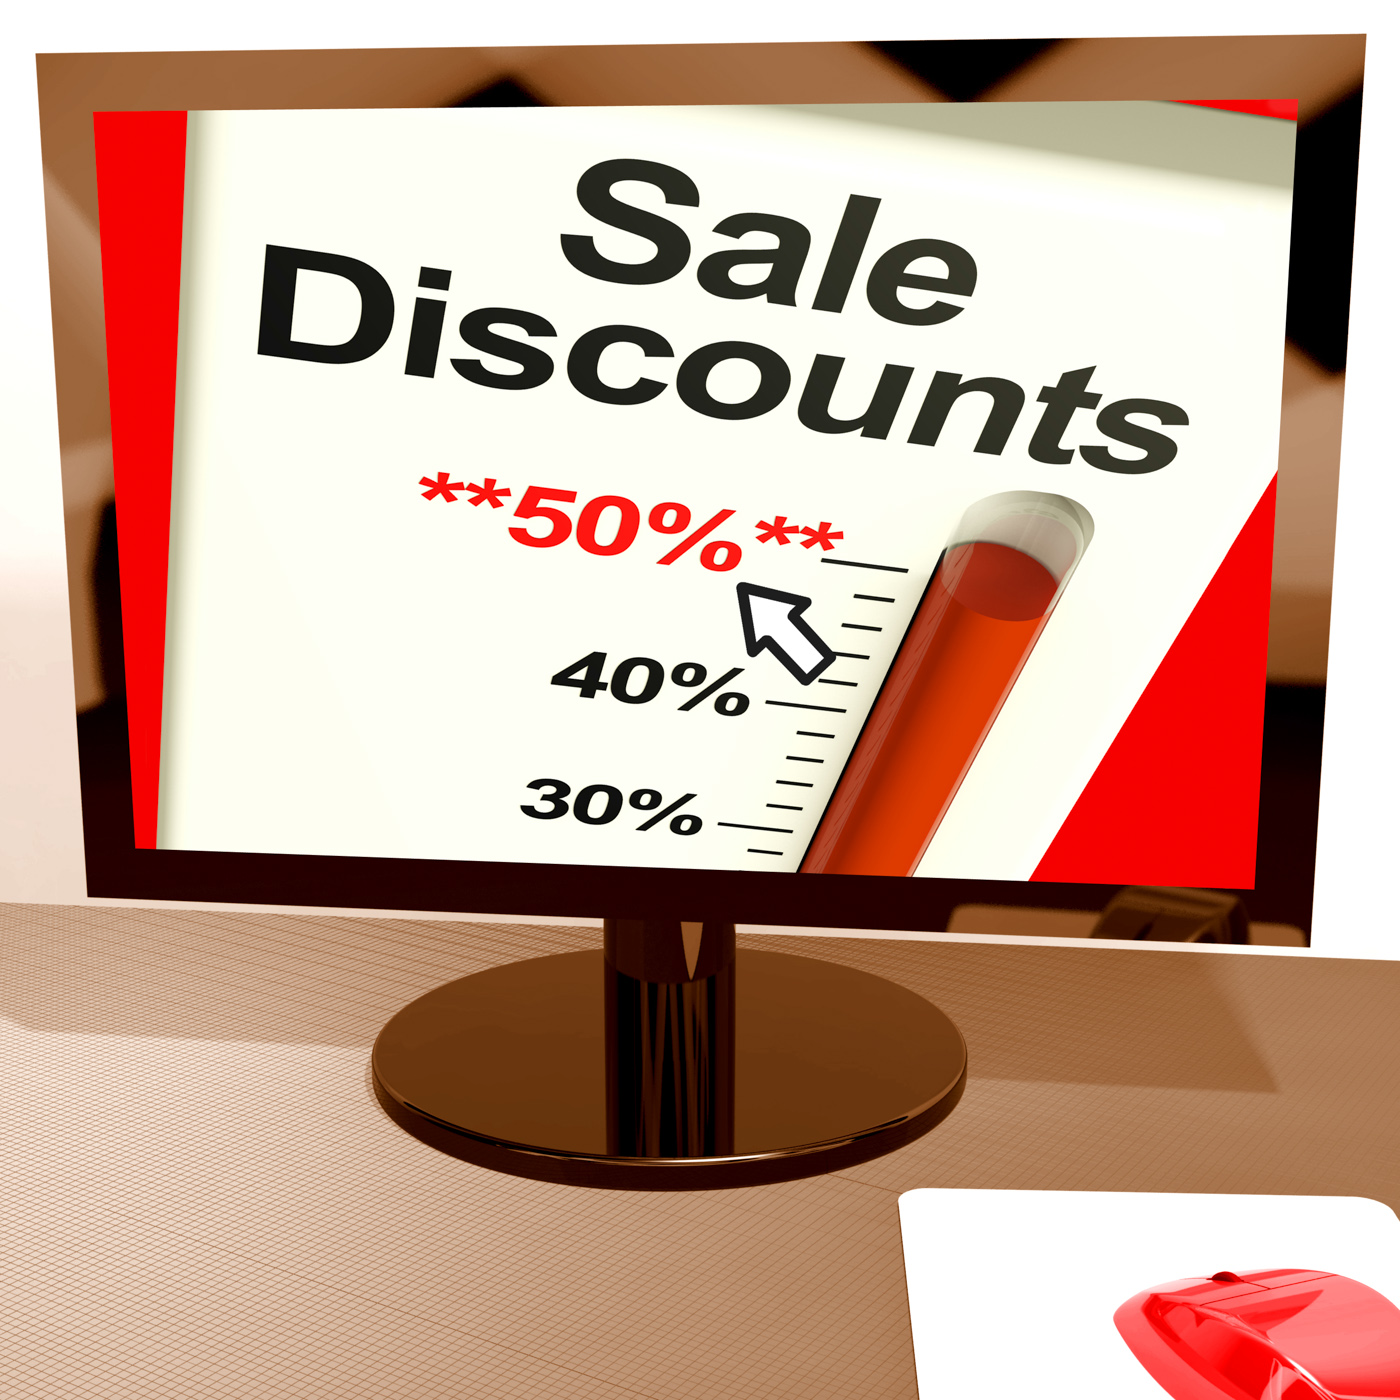 Fifty percent sale discounts showing online bargains photo